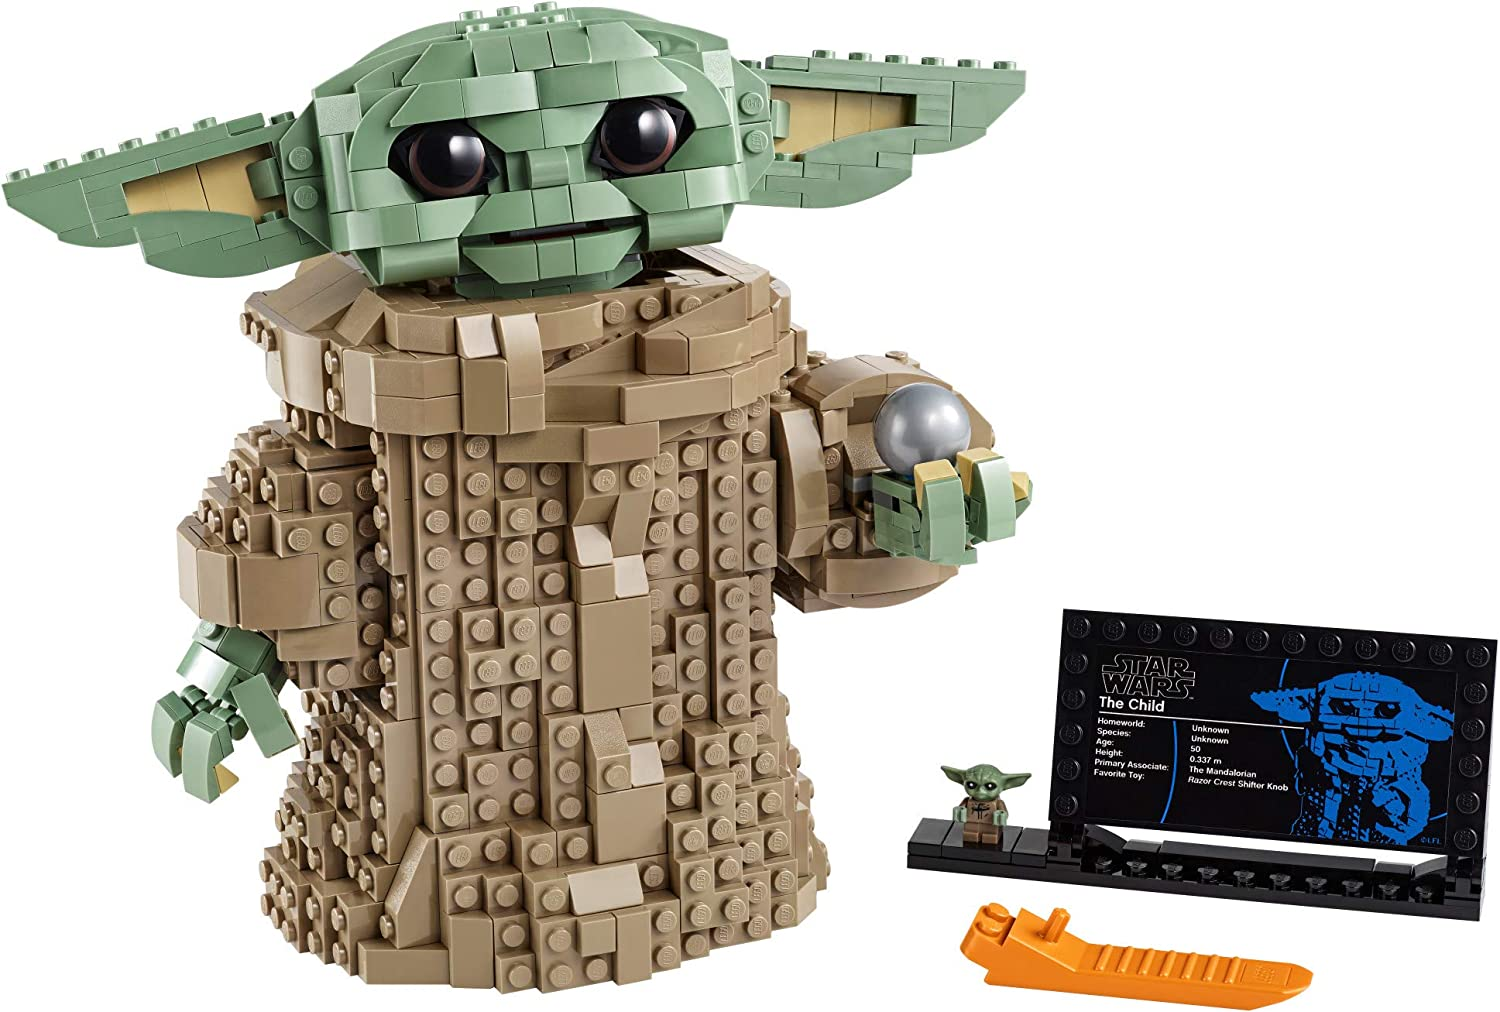 LEGO Star Wars: The Mandalorian The Child 75318 Building Kit; Collectible Buildable Toy Model for Ages 10+, New 2020 (1,073 Pieces)